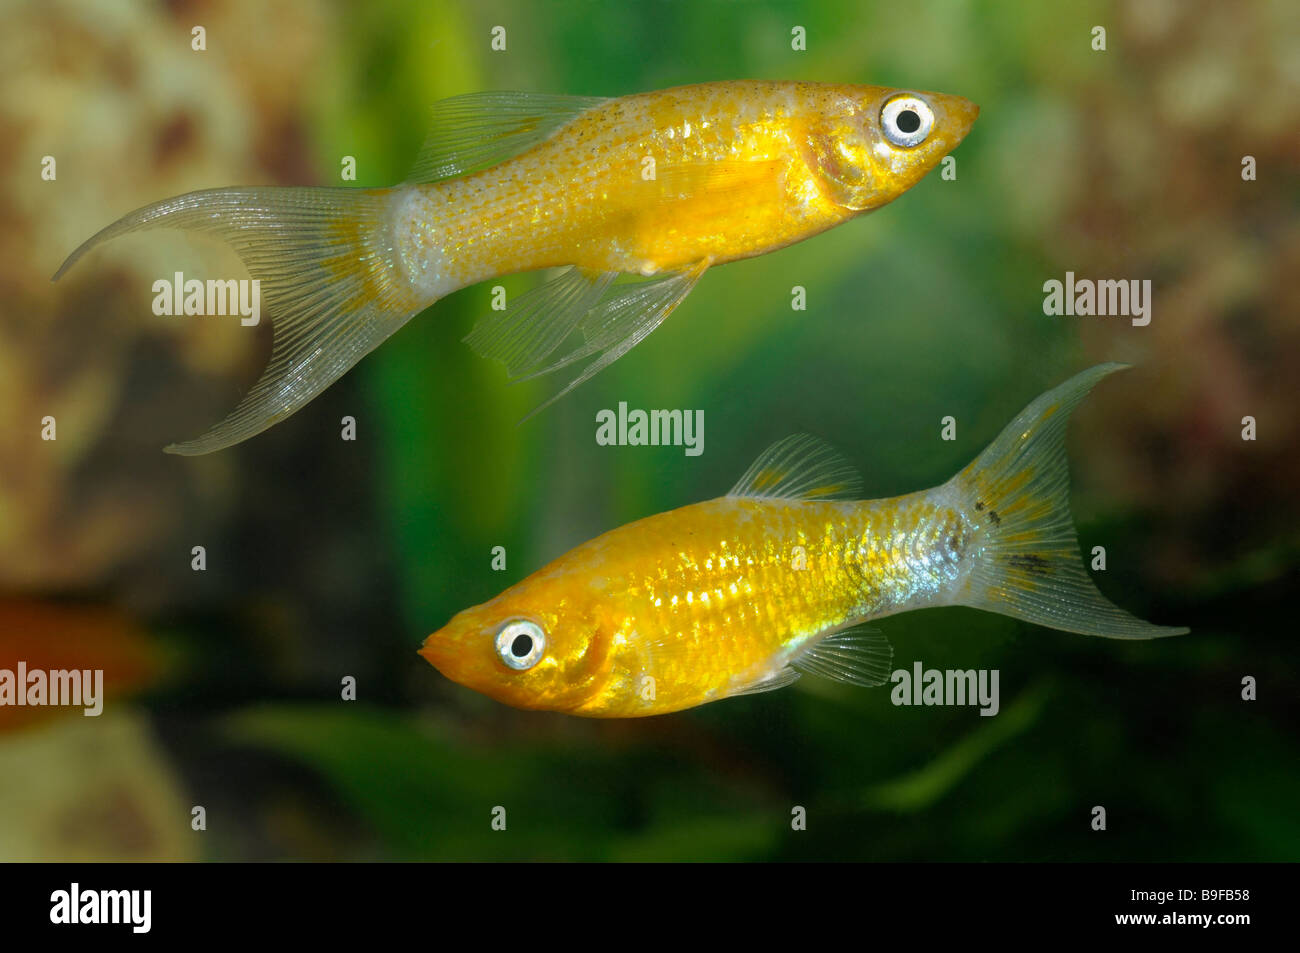 gold molly poecilia sphenops two individuals in an aquarium stock